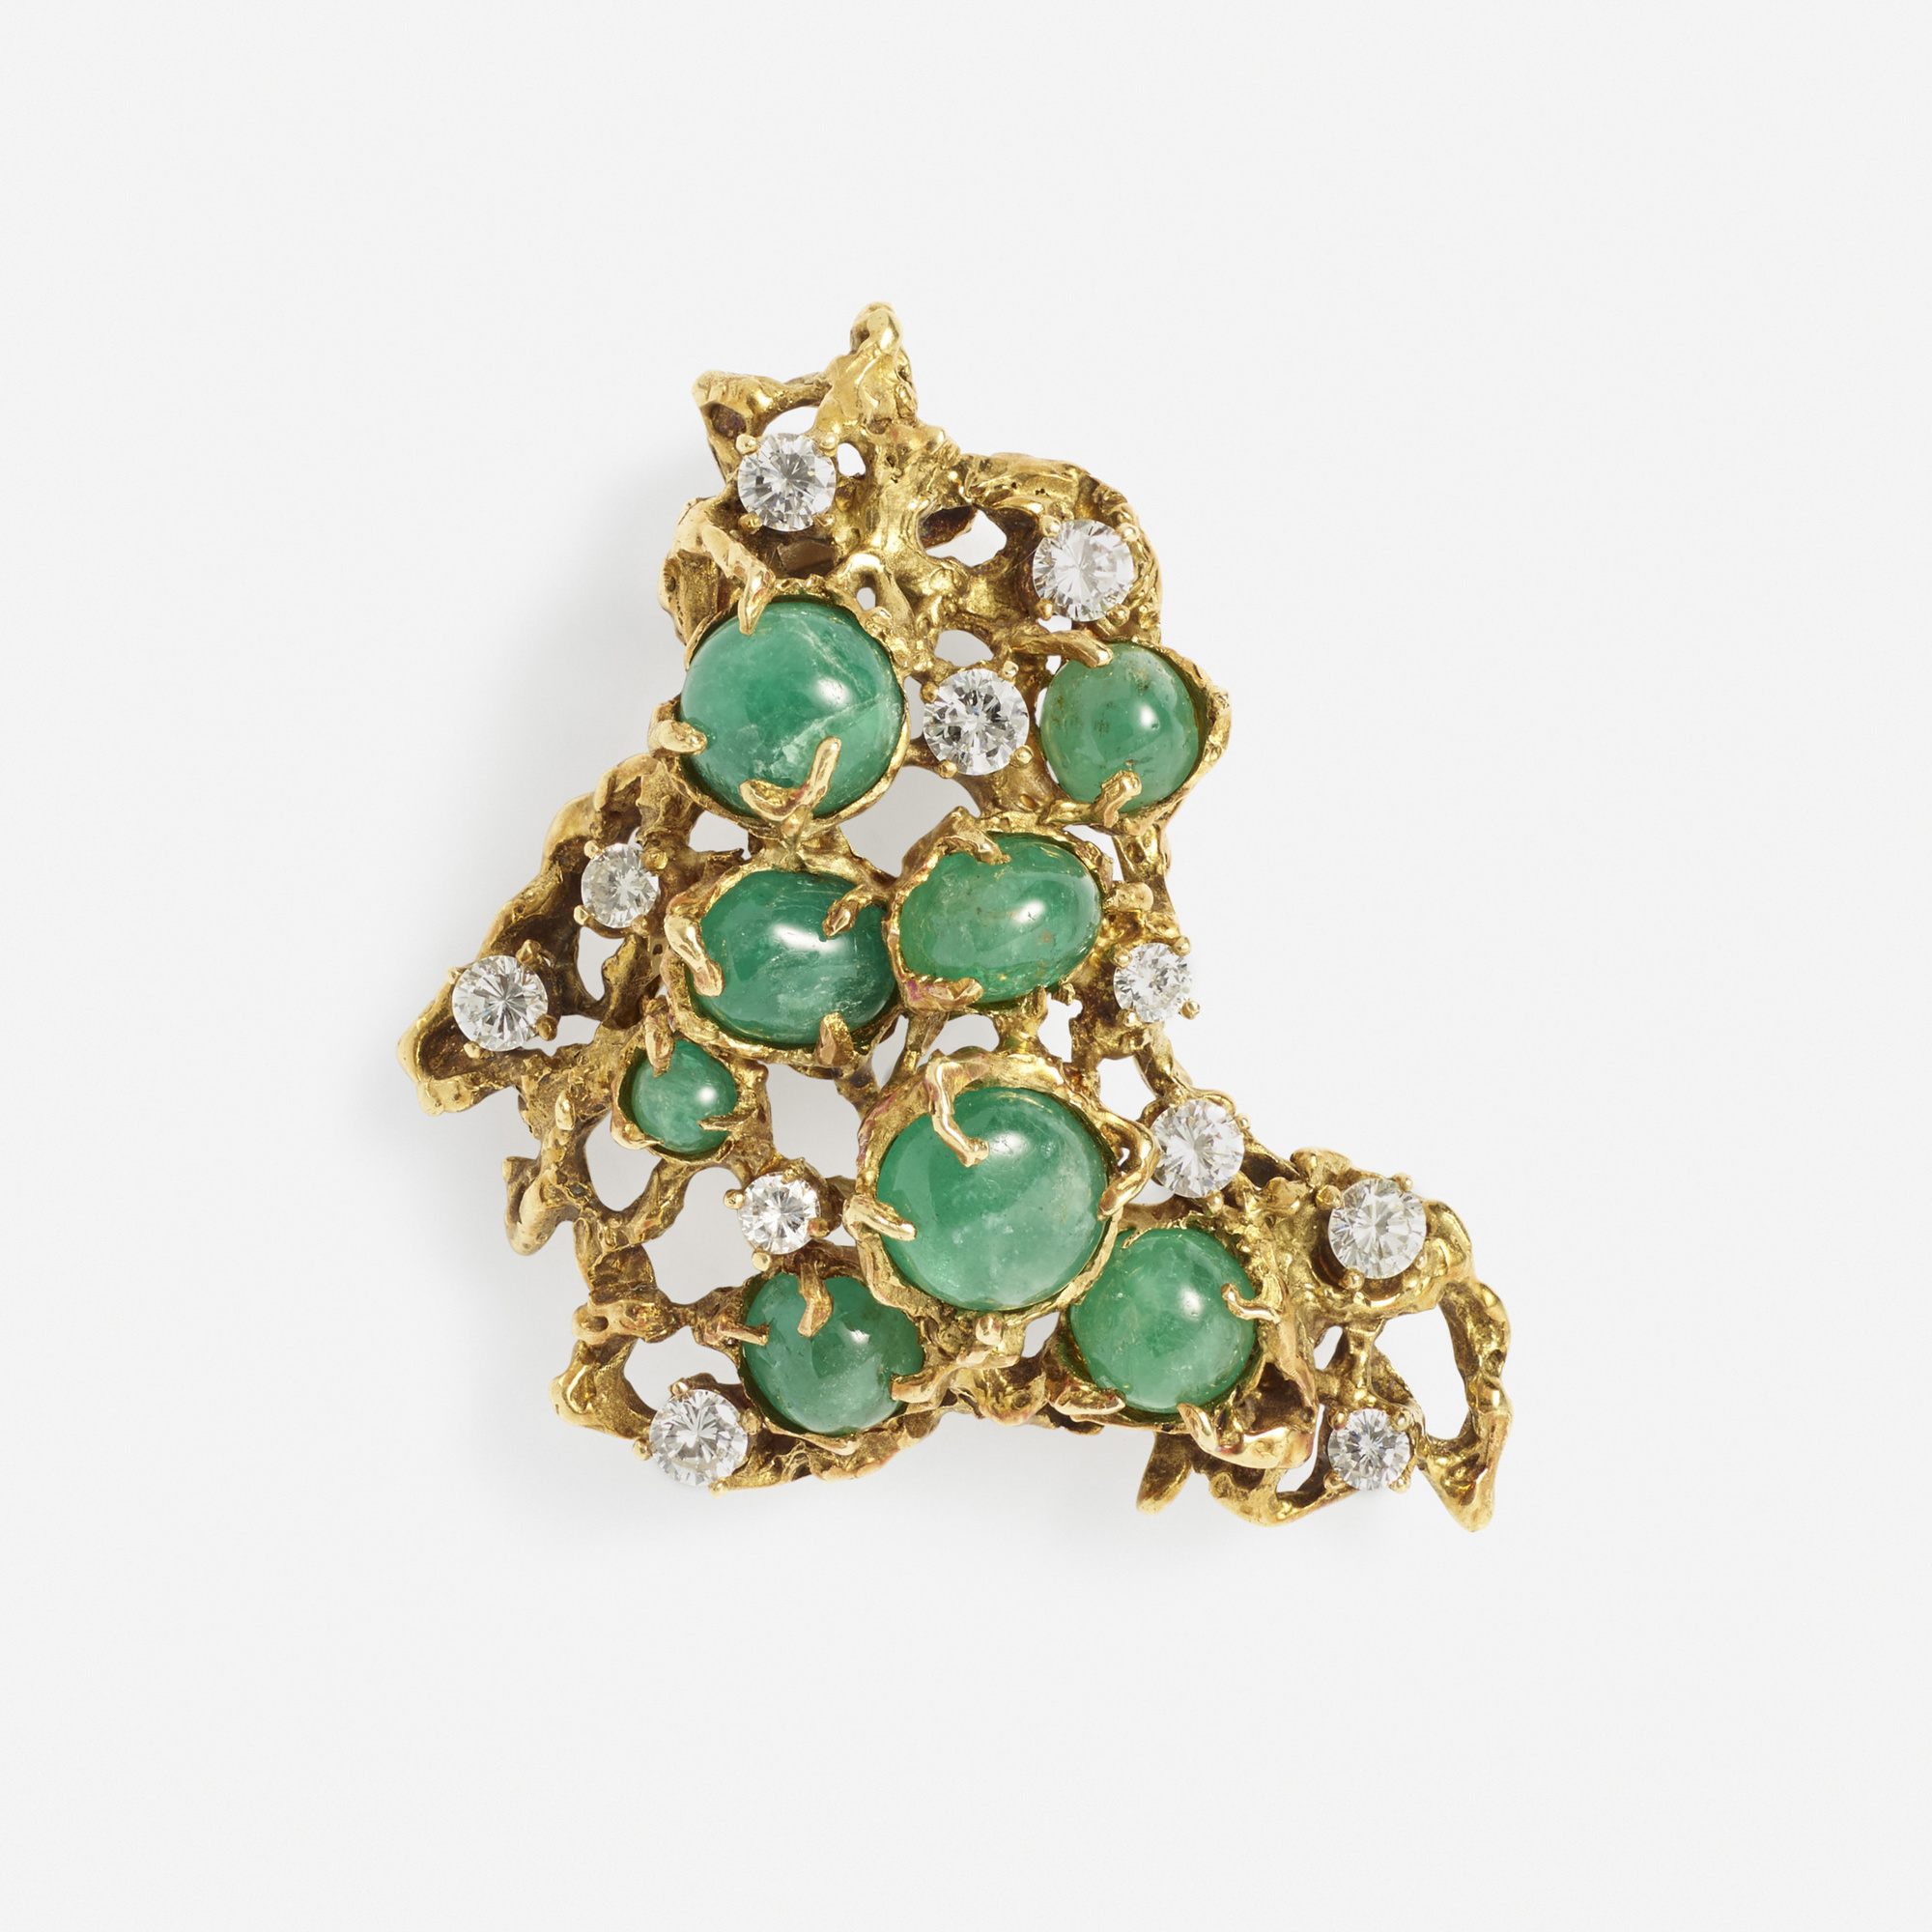 105: Arthur King / A gold, diamond and emerald brooch (1 of 1)